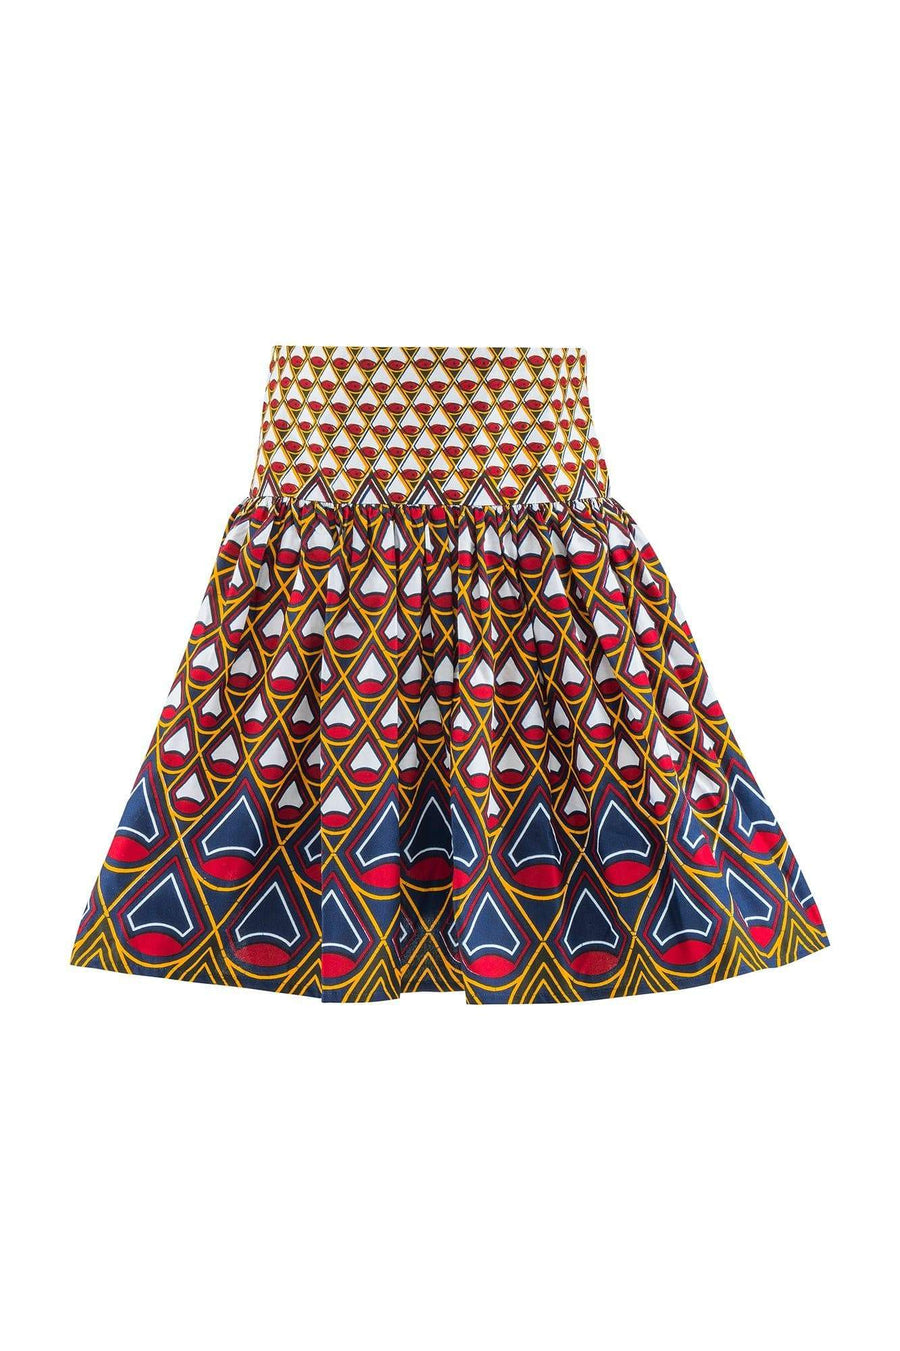 Sika'a Idayimane High Waisted African Print Mini Skirt